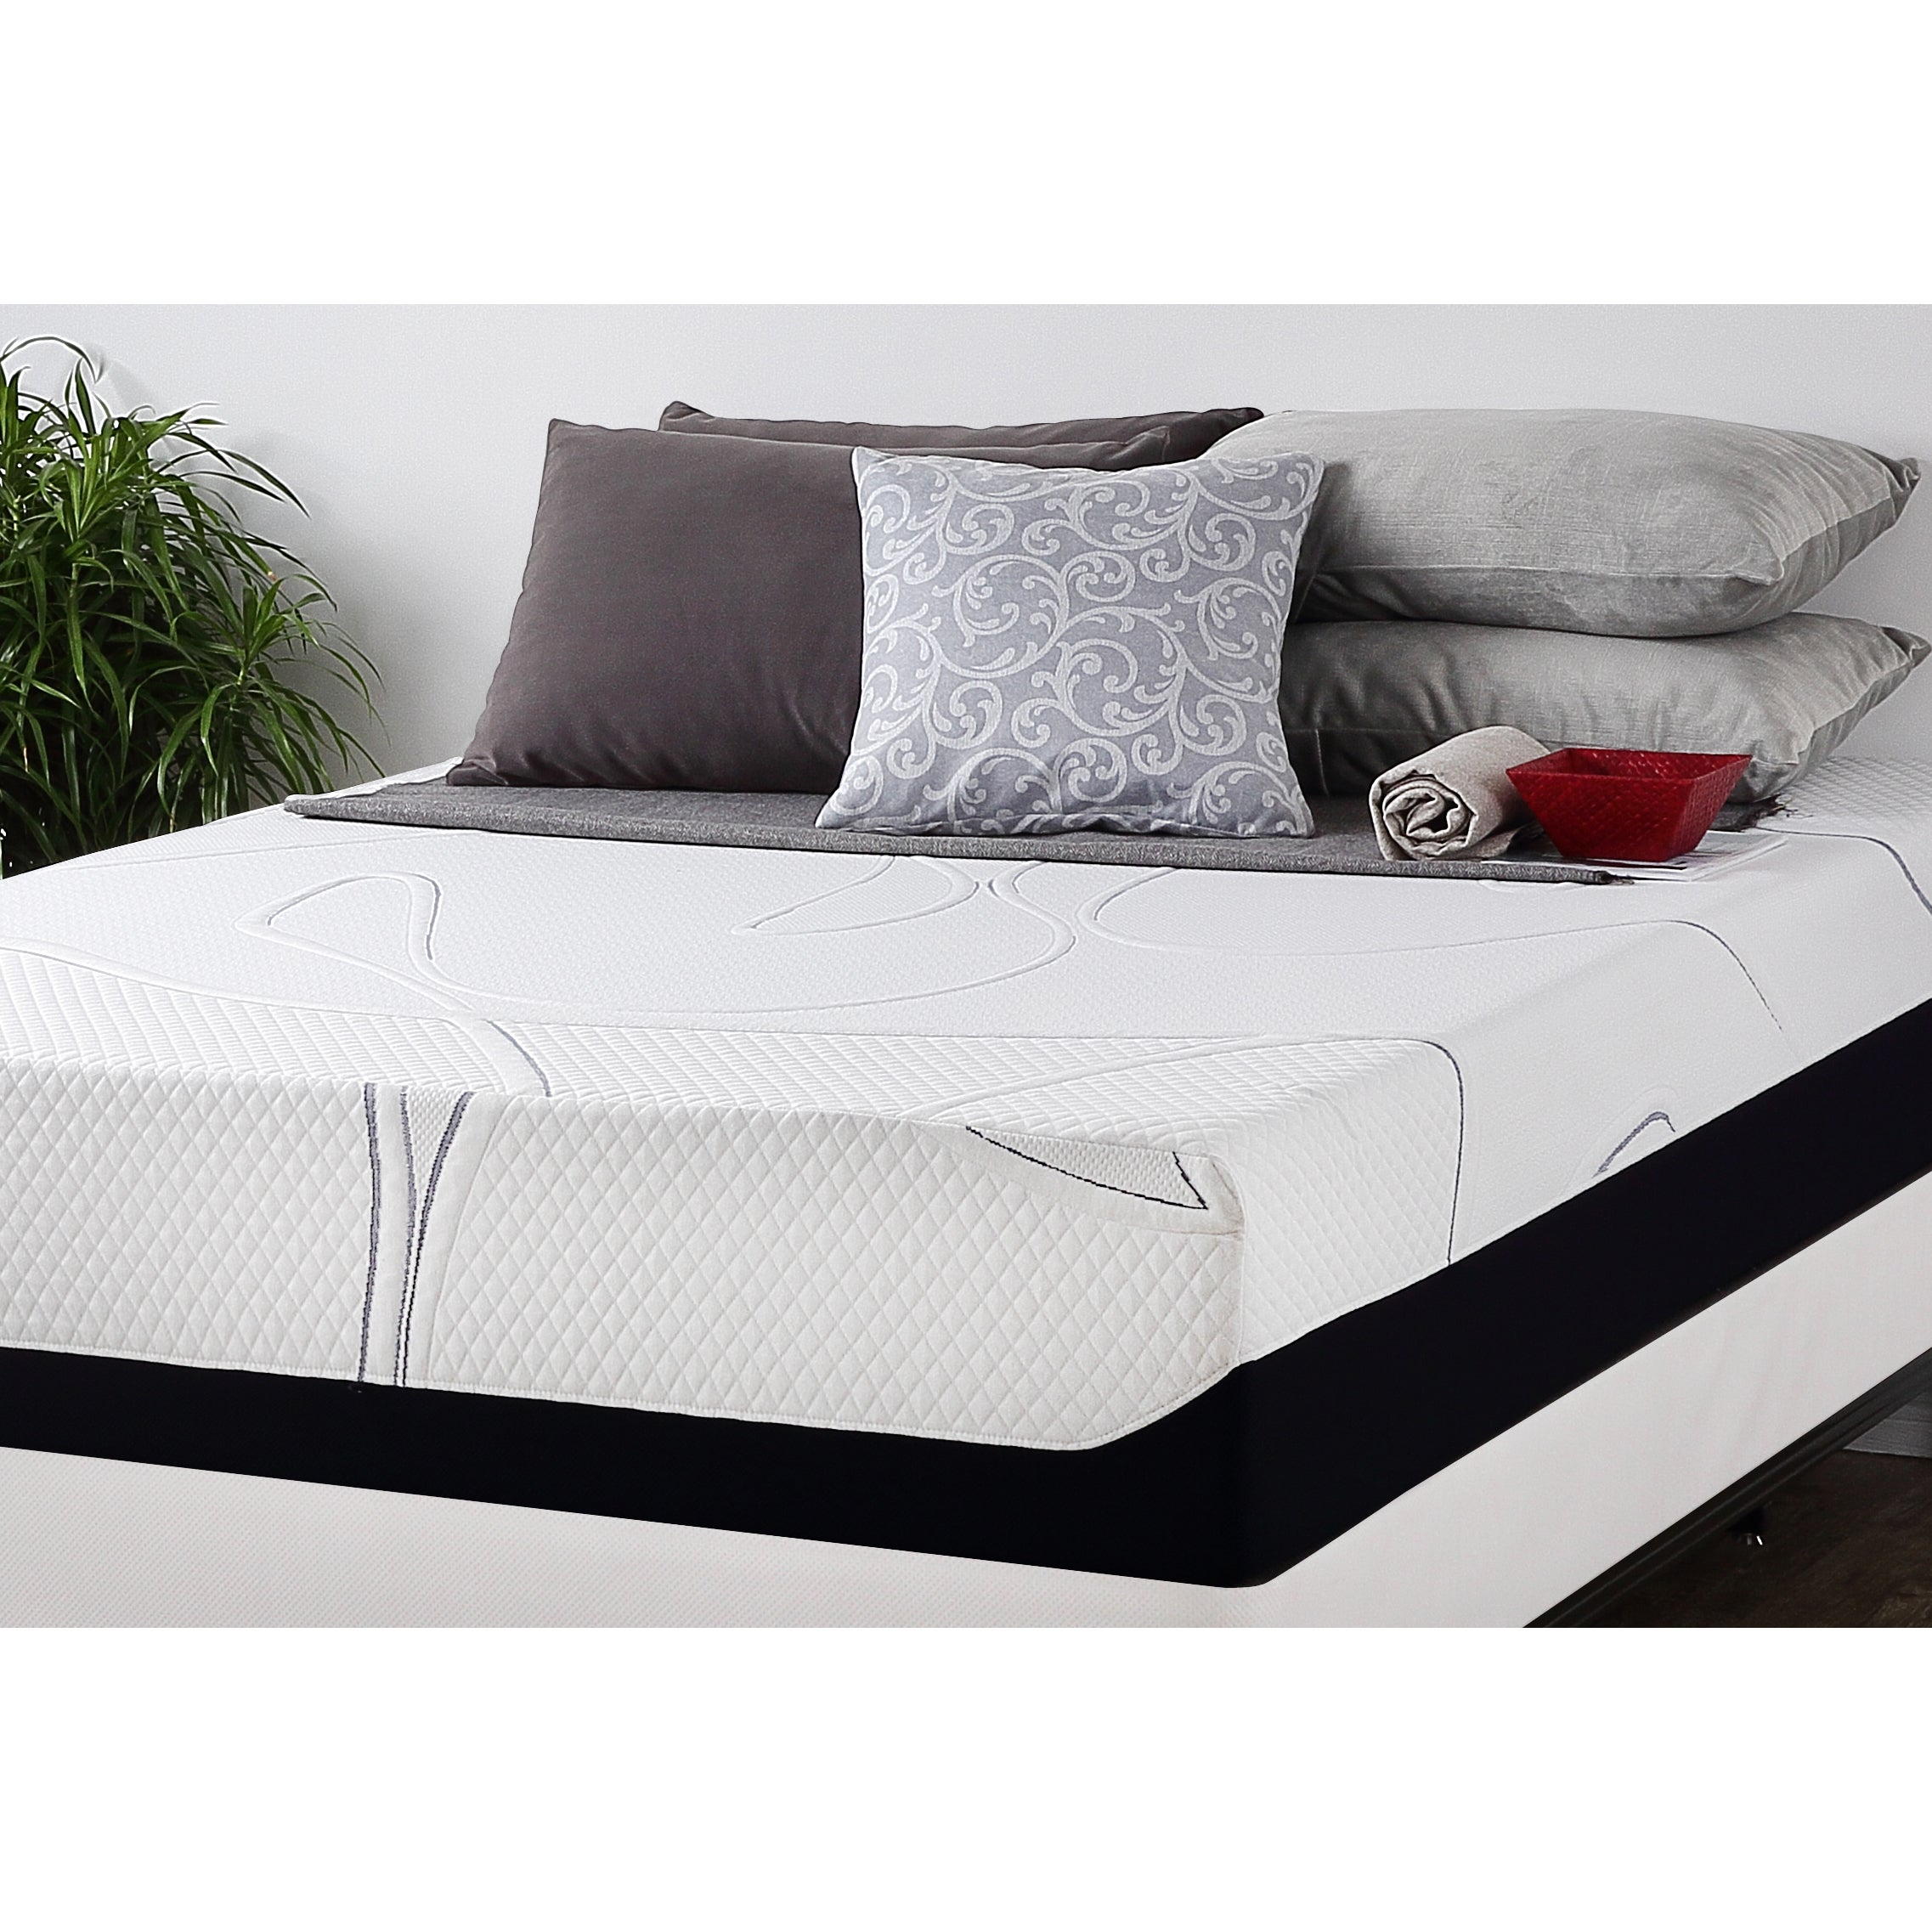 5d226c3e5bf8 Shop Priage by Zinus 12 inch Full-size Gel Memory Foam Mattress - Free  Shipping Today - Overstock.com - 9951515